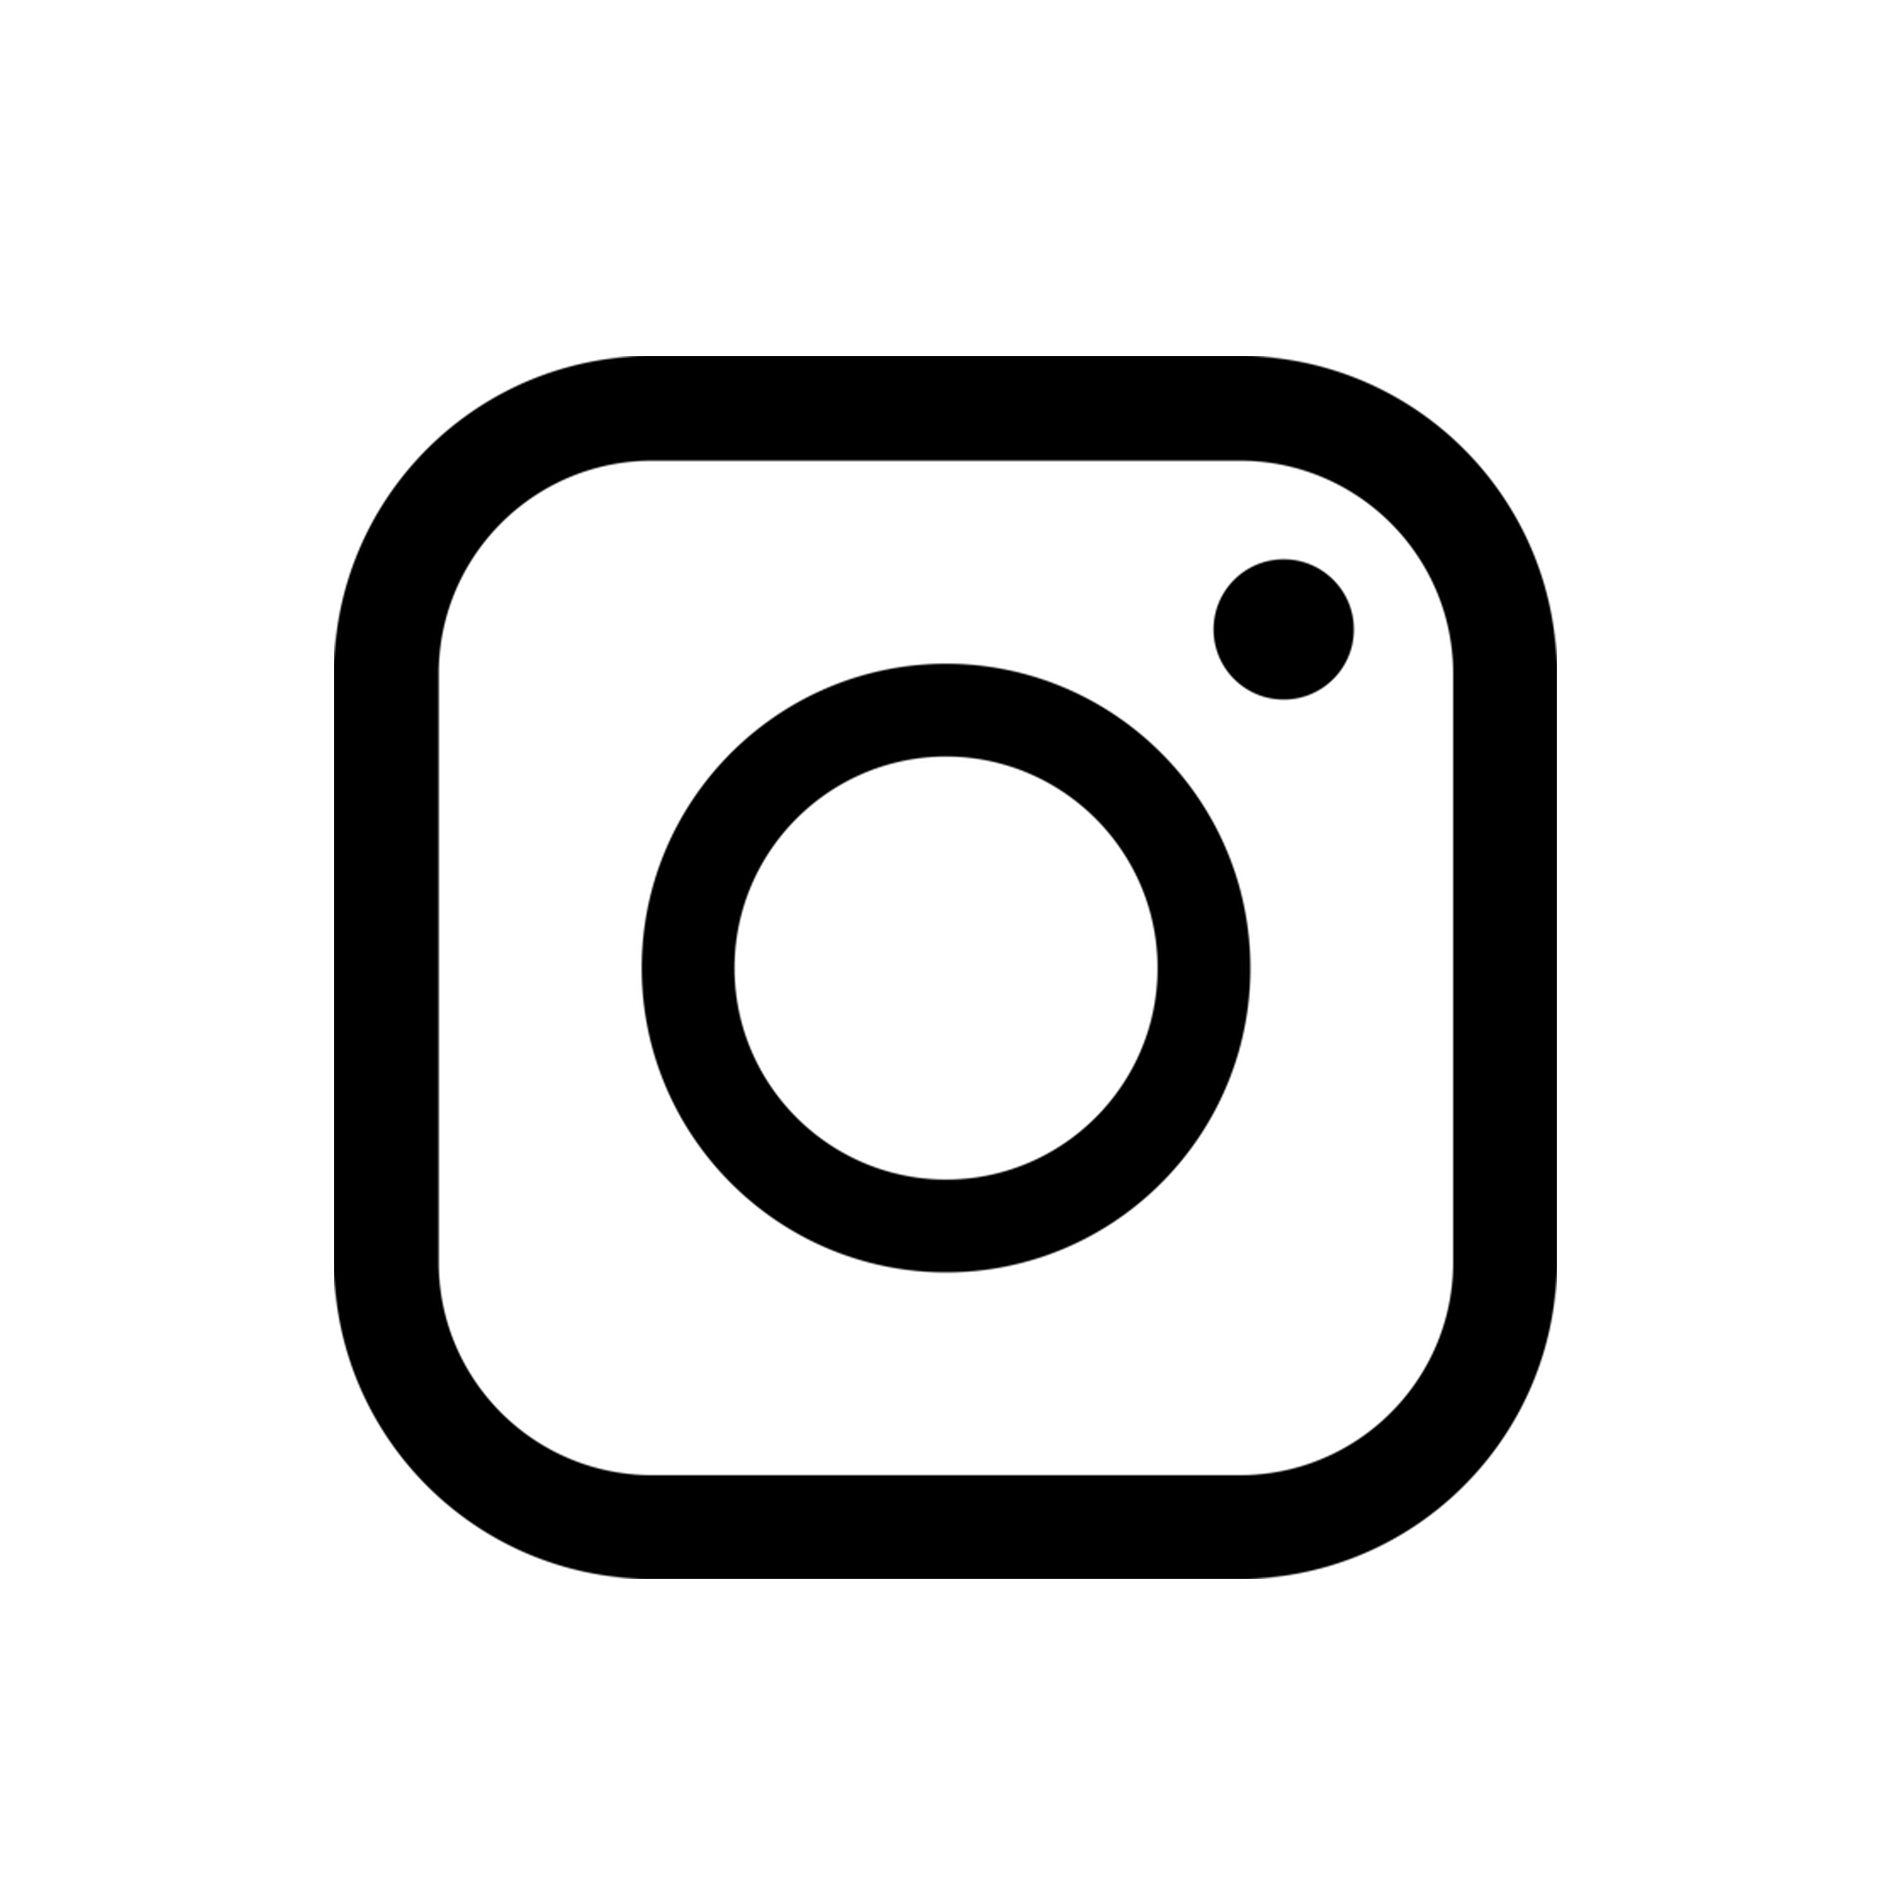 1890x1890 Instagram Logo Graphic Library Stock Png